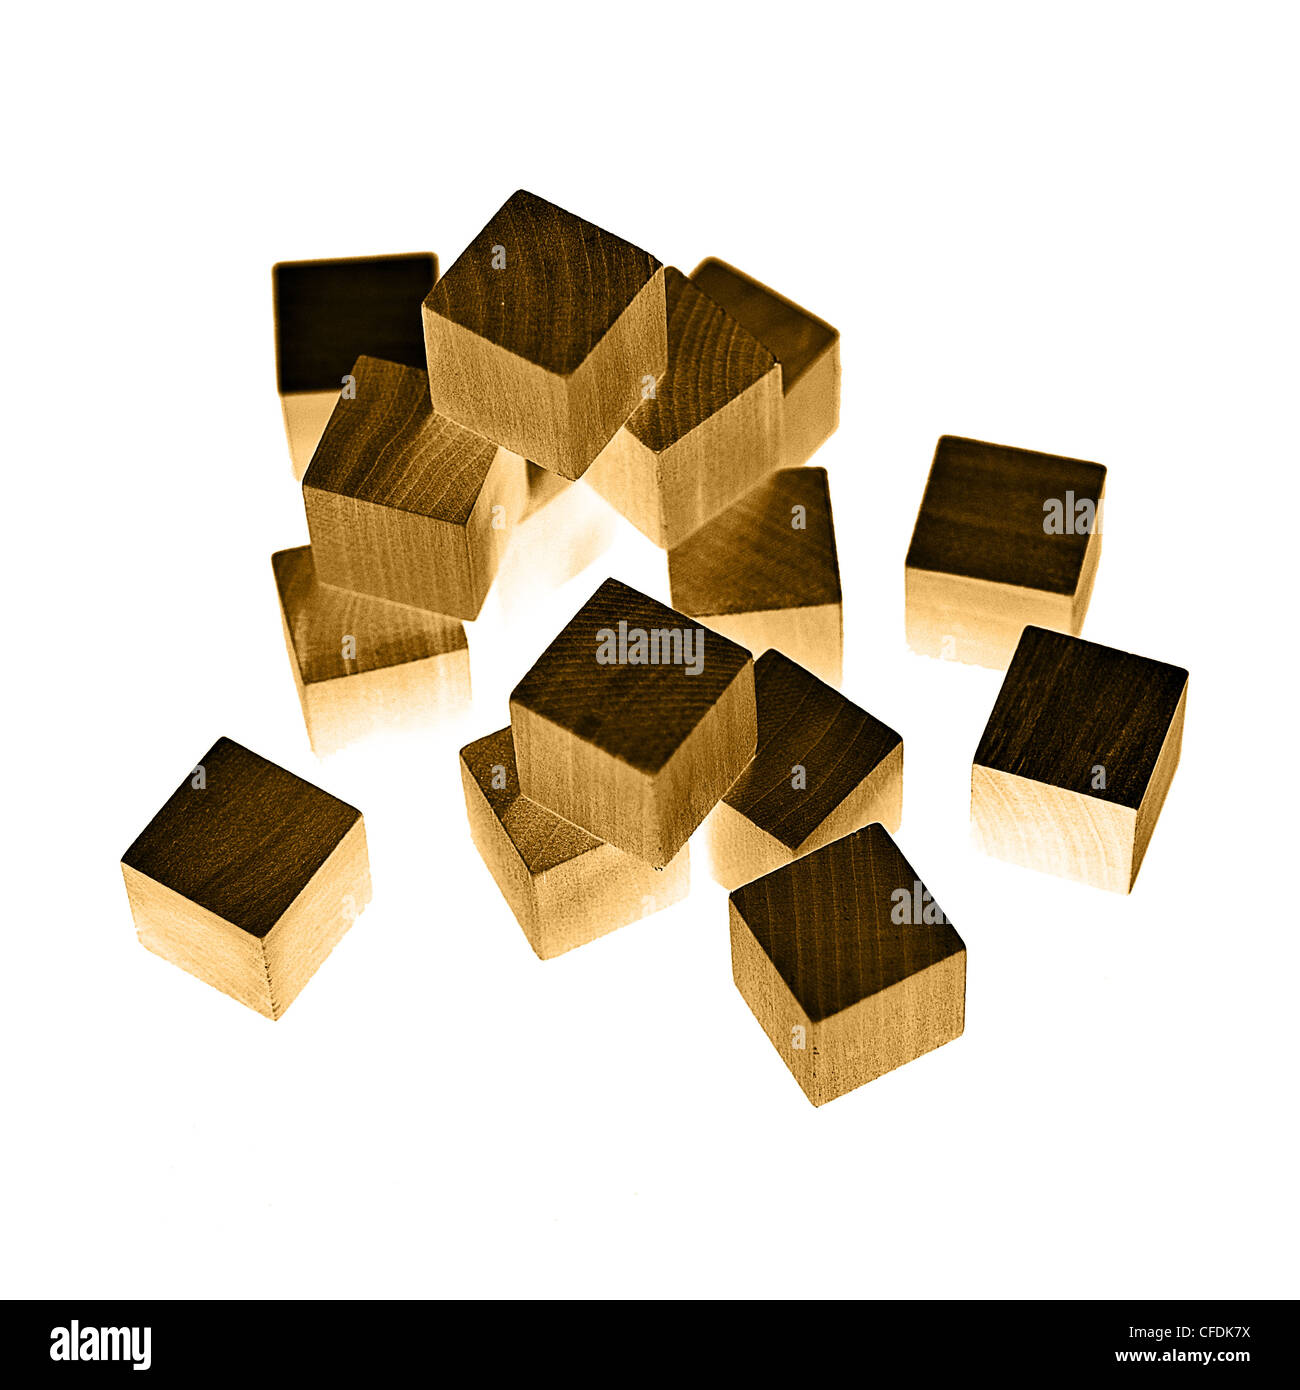 Wooden blocks - Stock Image